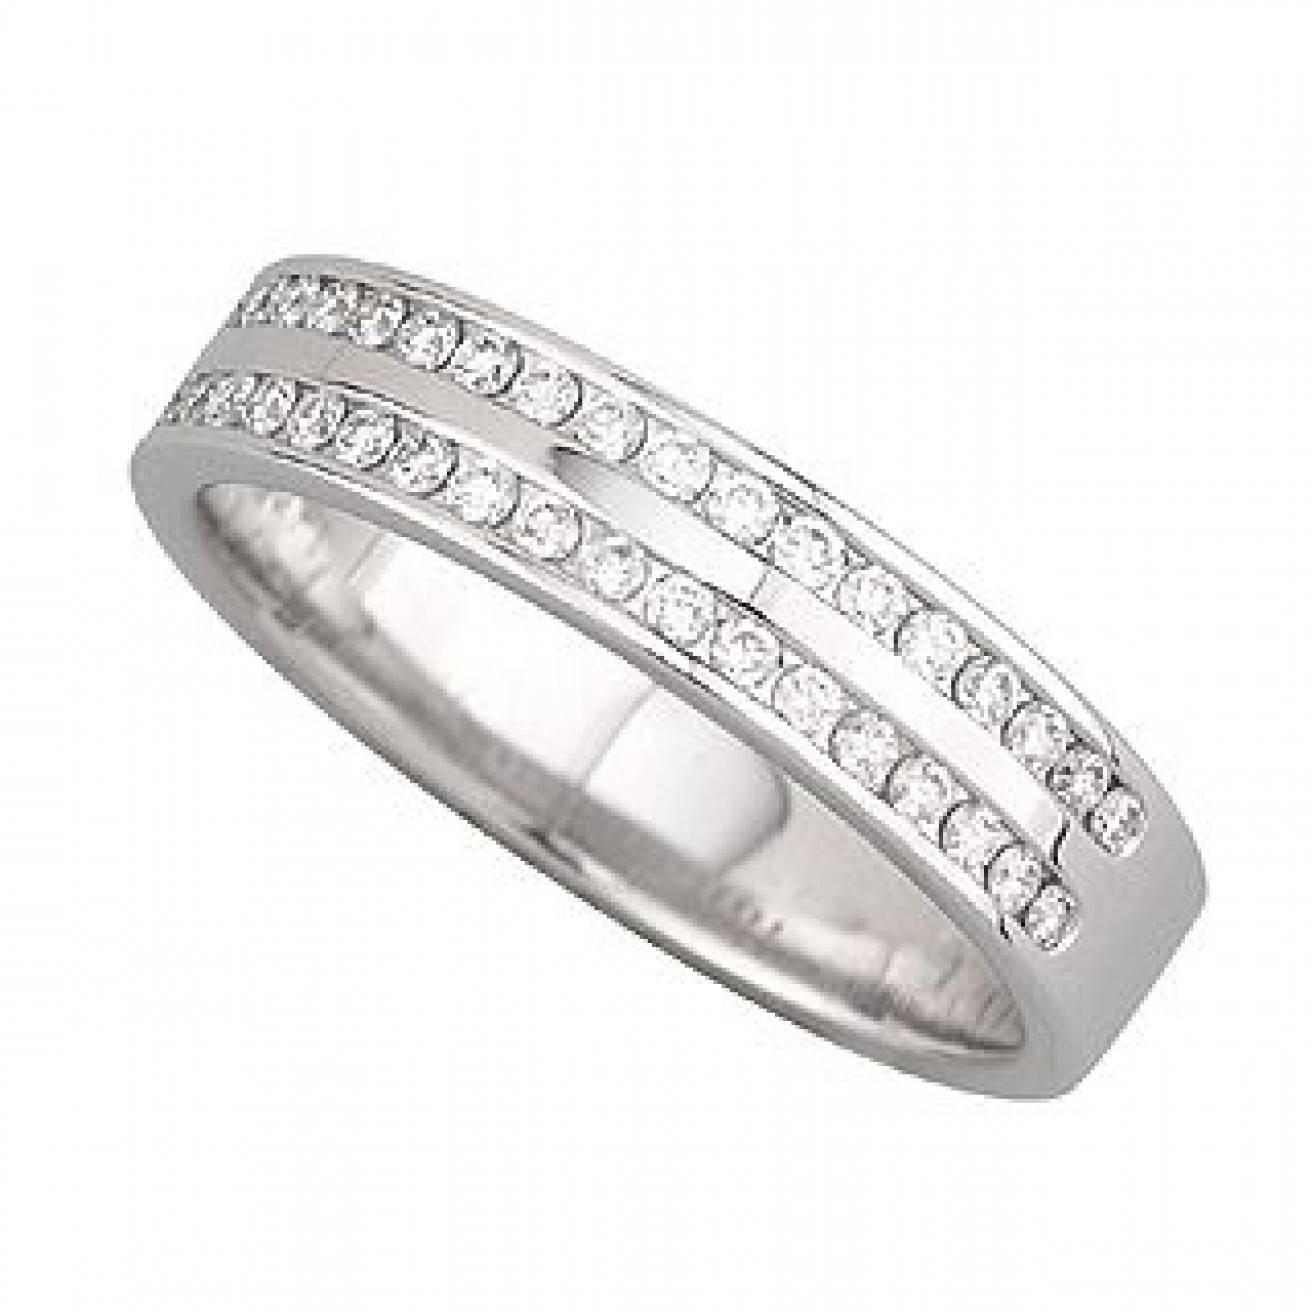 Buy Platinum Wedding Bands Online – Fraser Hart Inside Platinum And Diamond Wedding Rings (View 3 of 15)